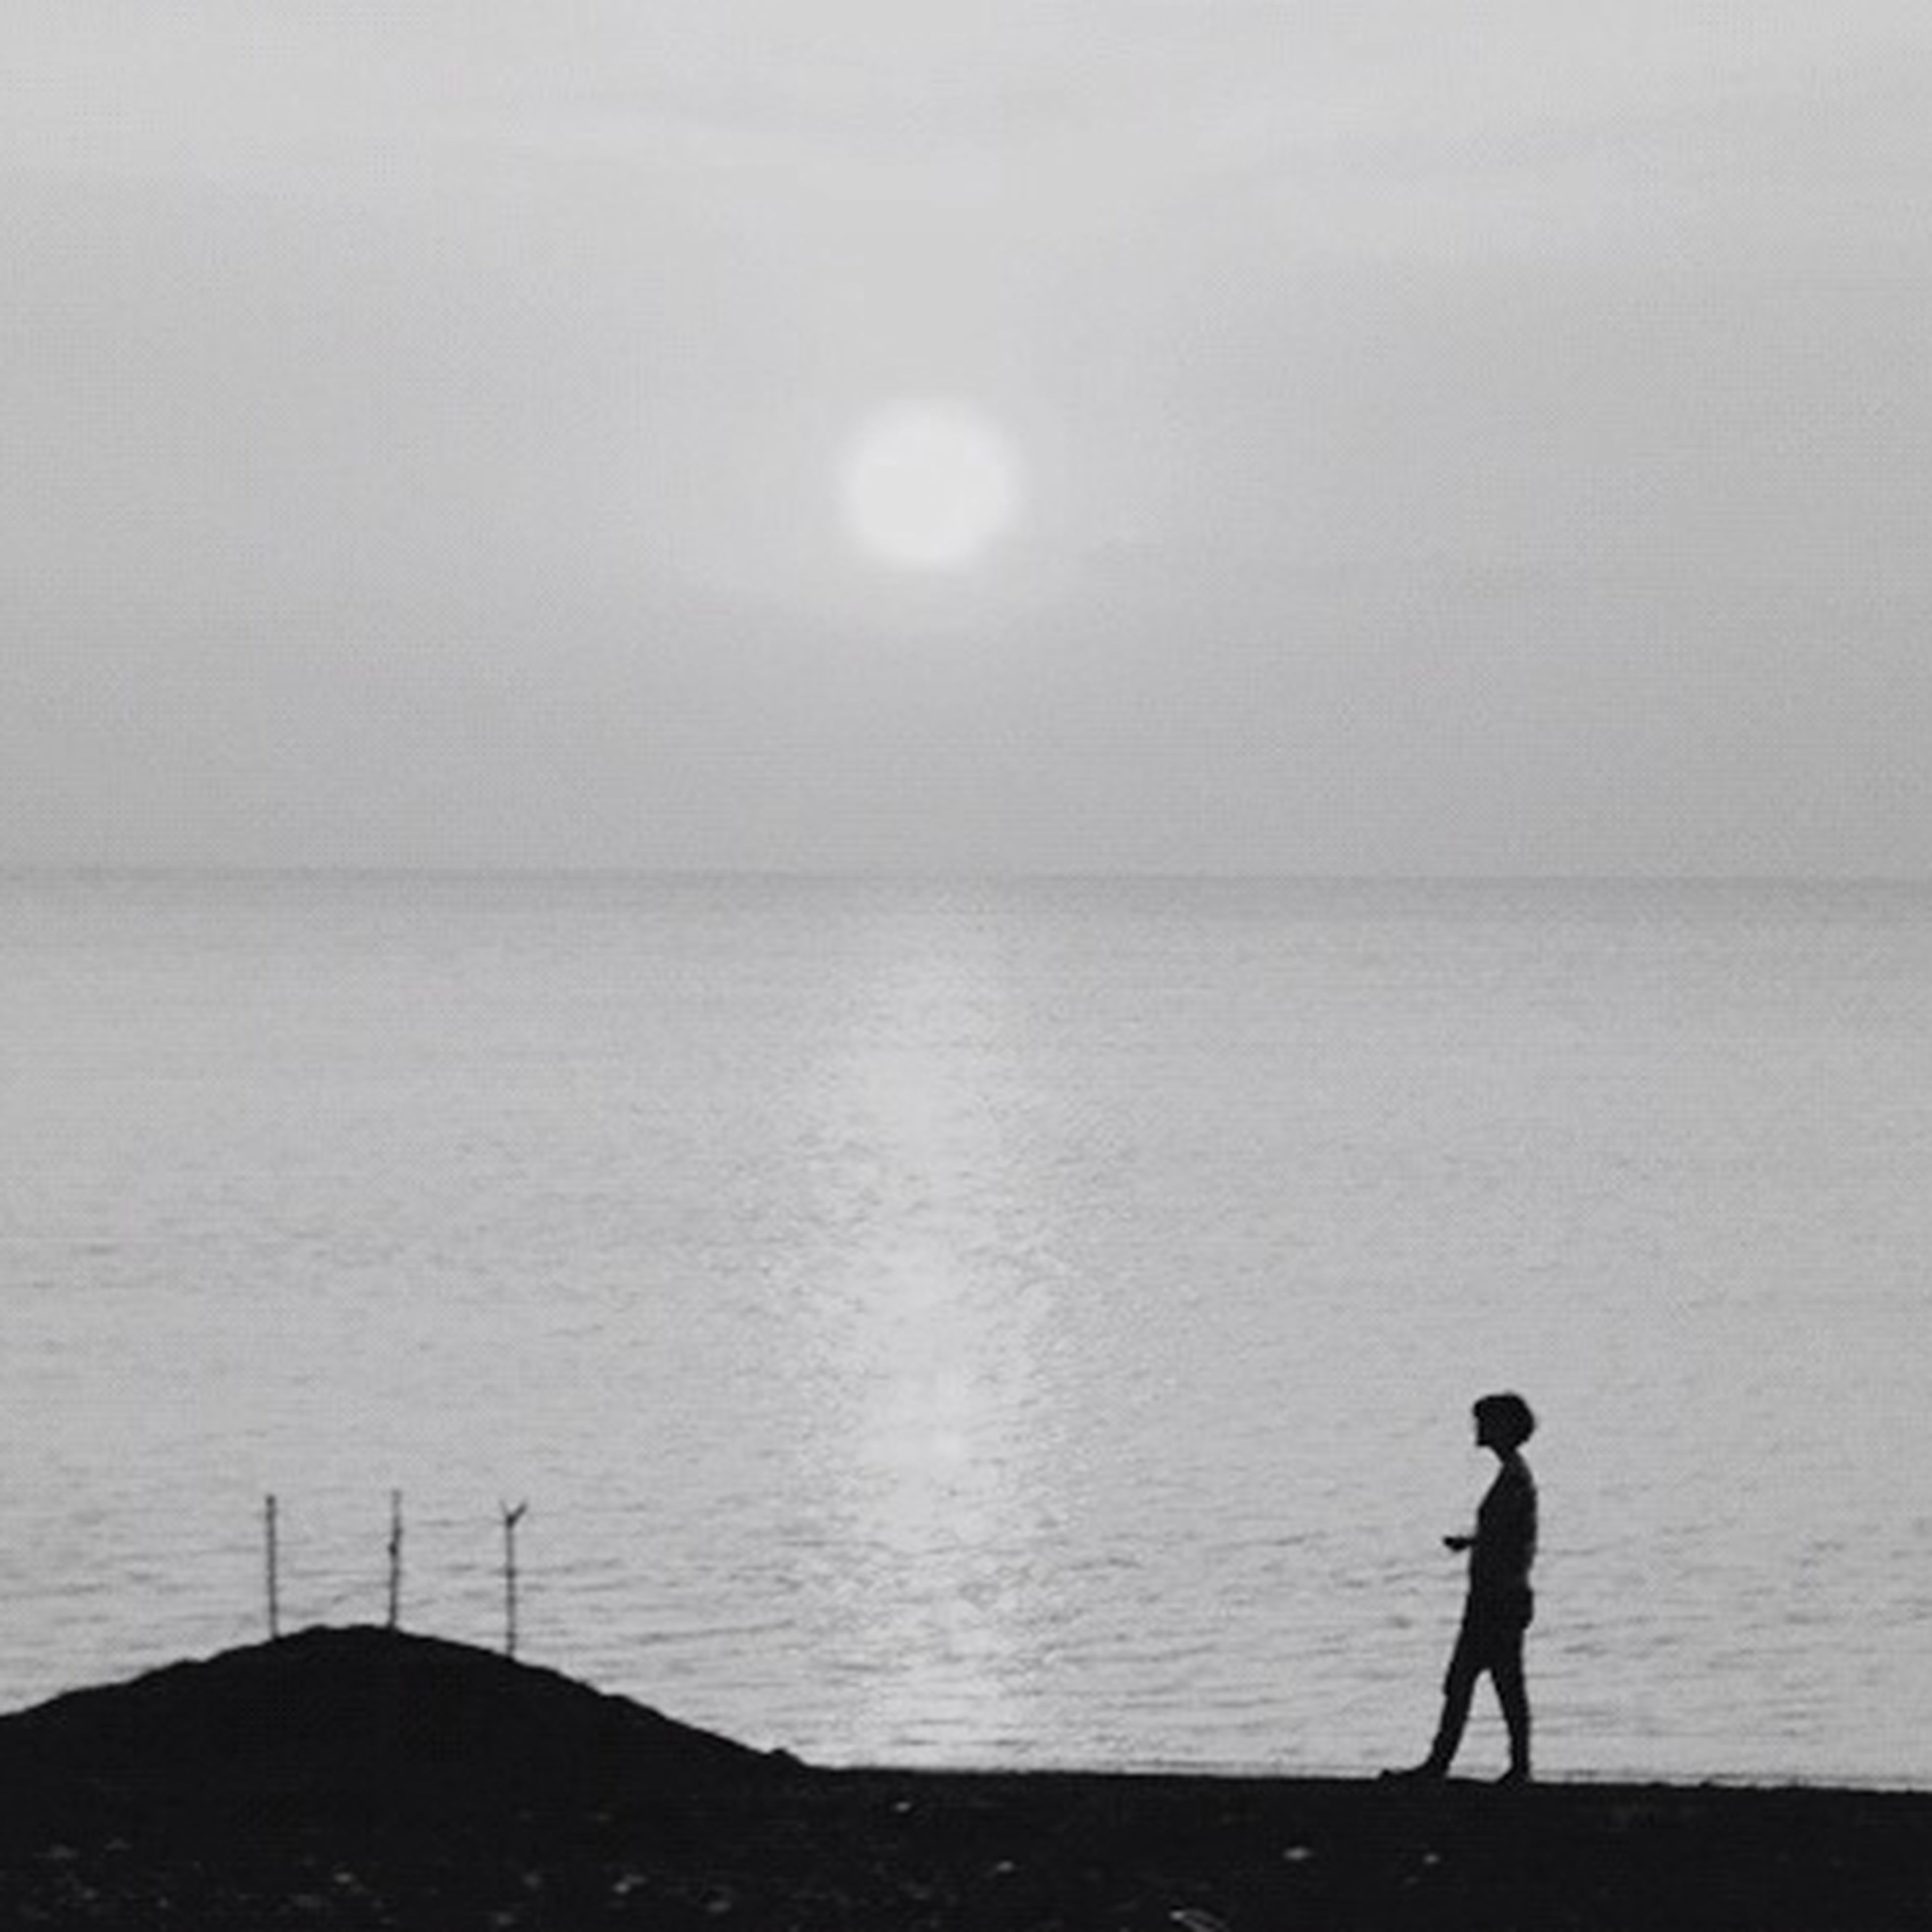 water, sea, horizon over water, standing, tranquility, tranquil scene, silhouette, lifestyles, leisure activity, scenics, full length, beauty in nature, rear view, nature, men, sky, idyllic, beach